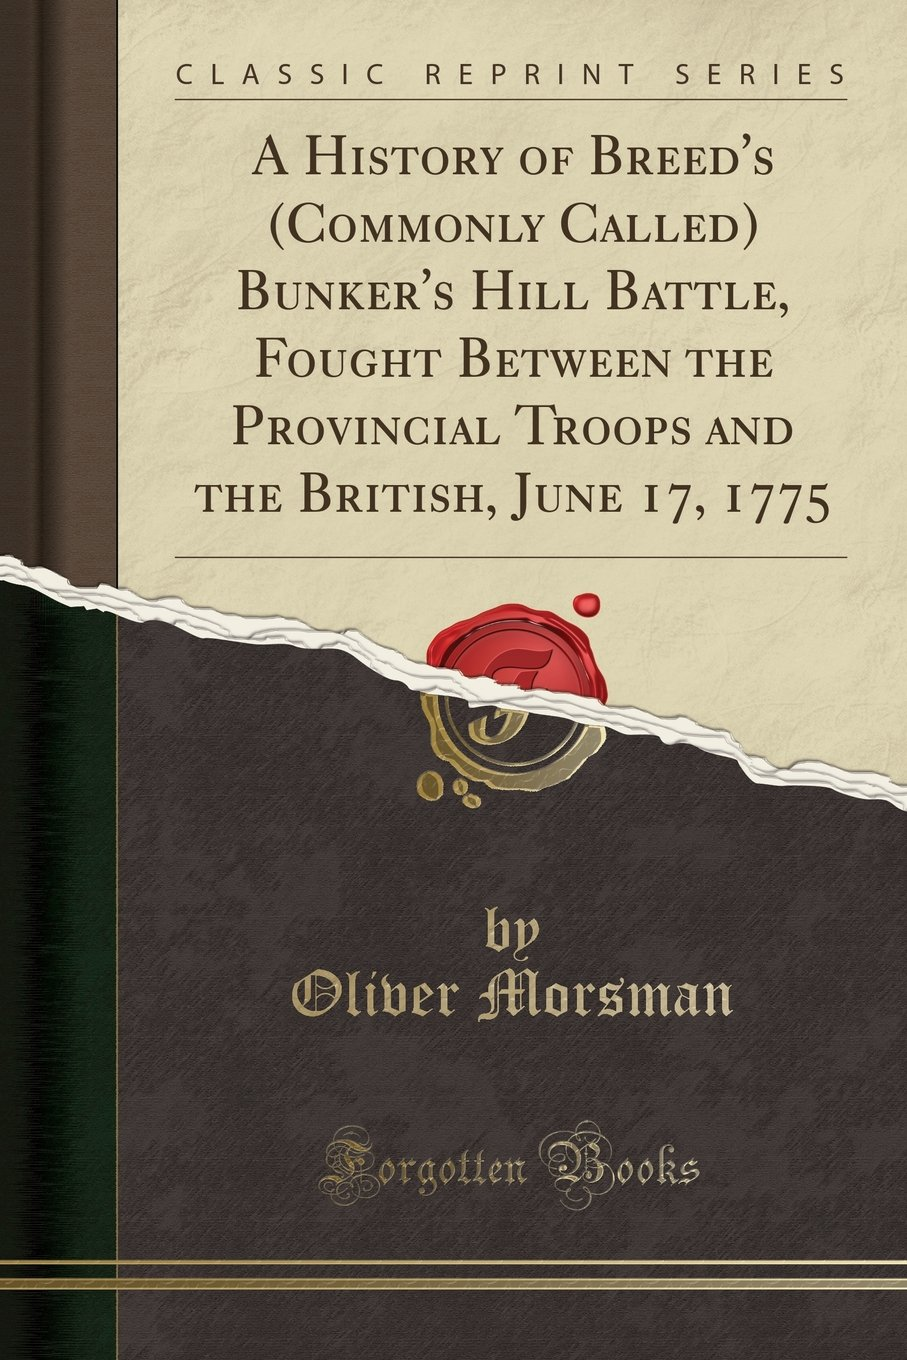 A History of Breed's (Commonly Called) Bunker's Hill Battle, Fought Between the Provincial Troops and the British, June 17, 1775 (Classic Reprint) PDF